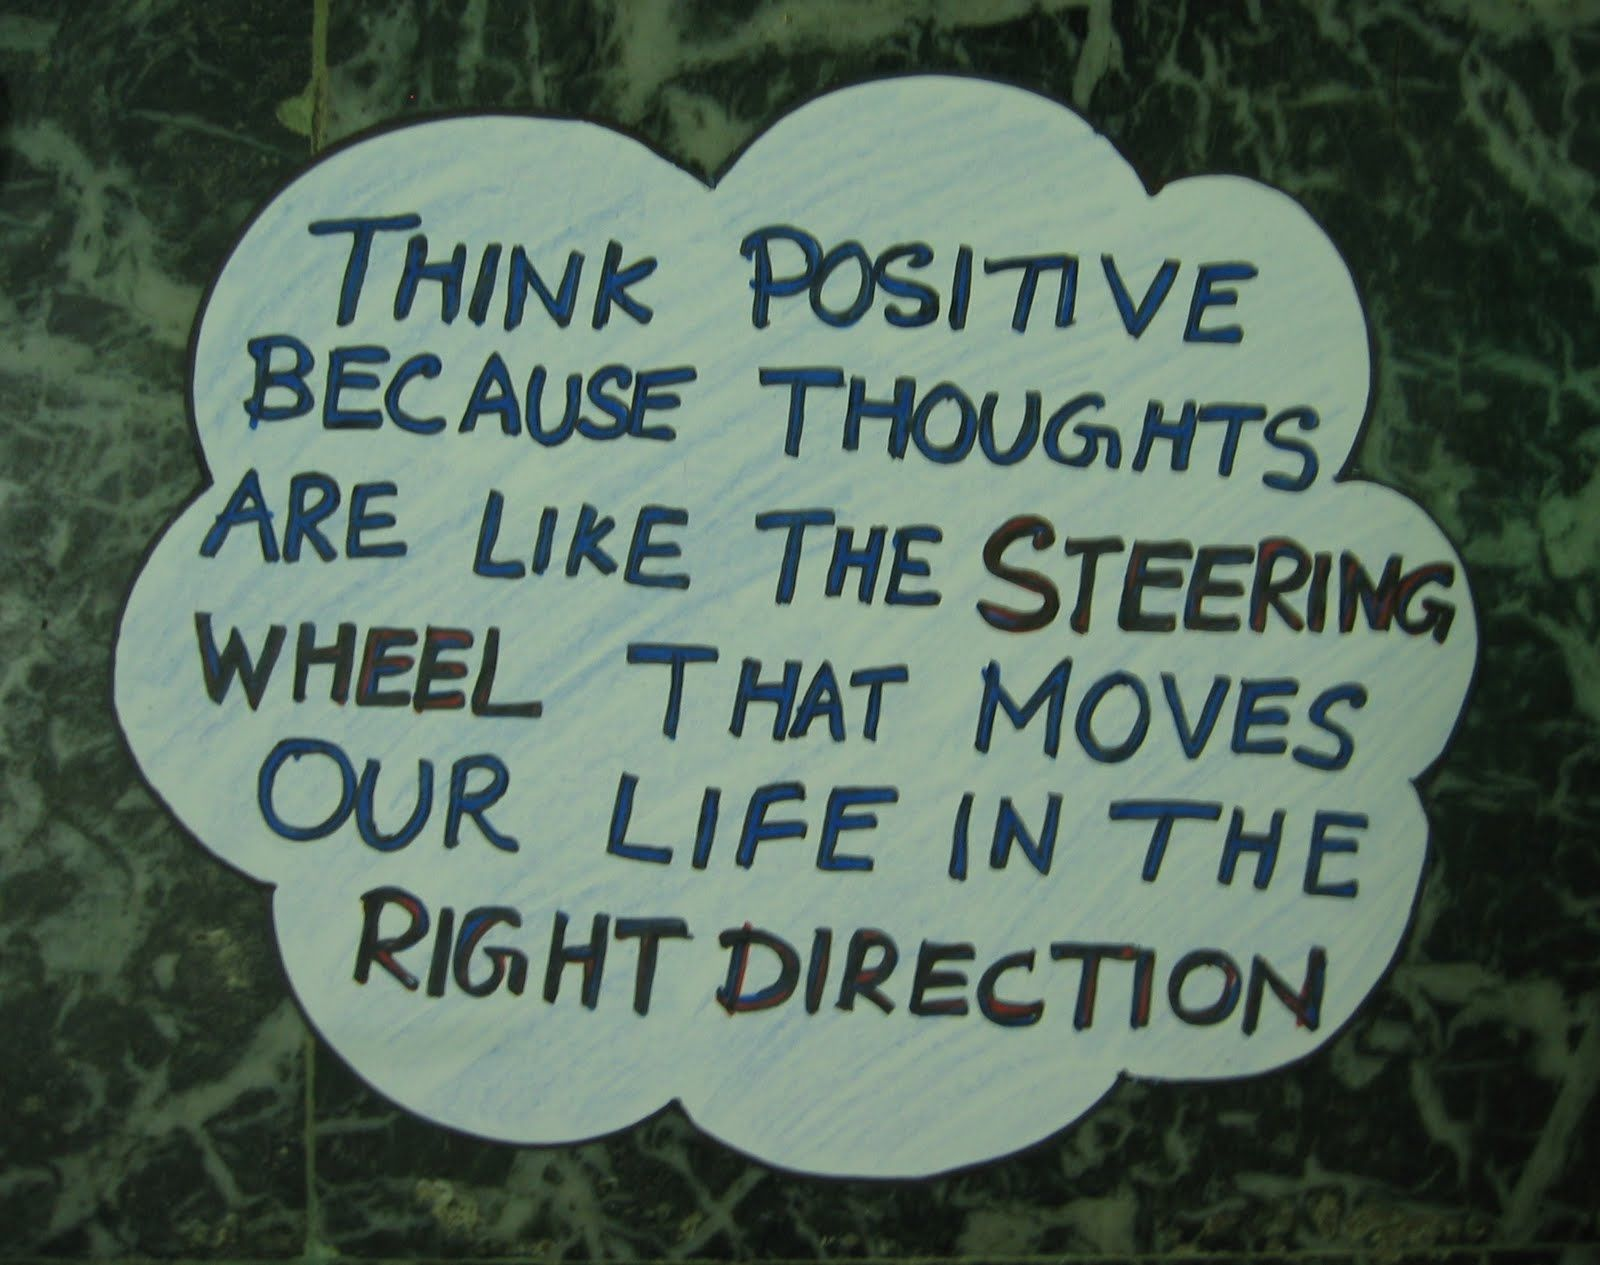 Think Positive Because Thoughts Are Like Steering Wheels